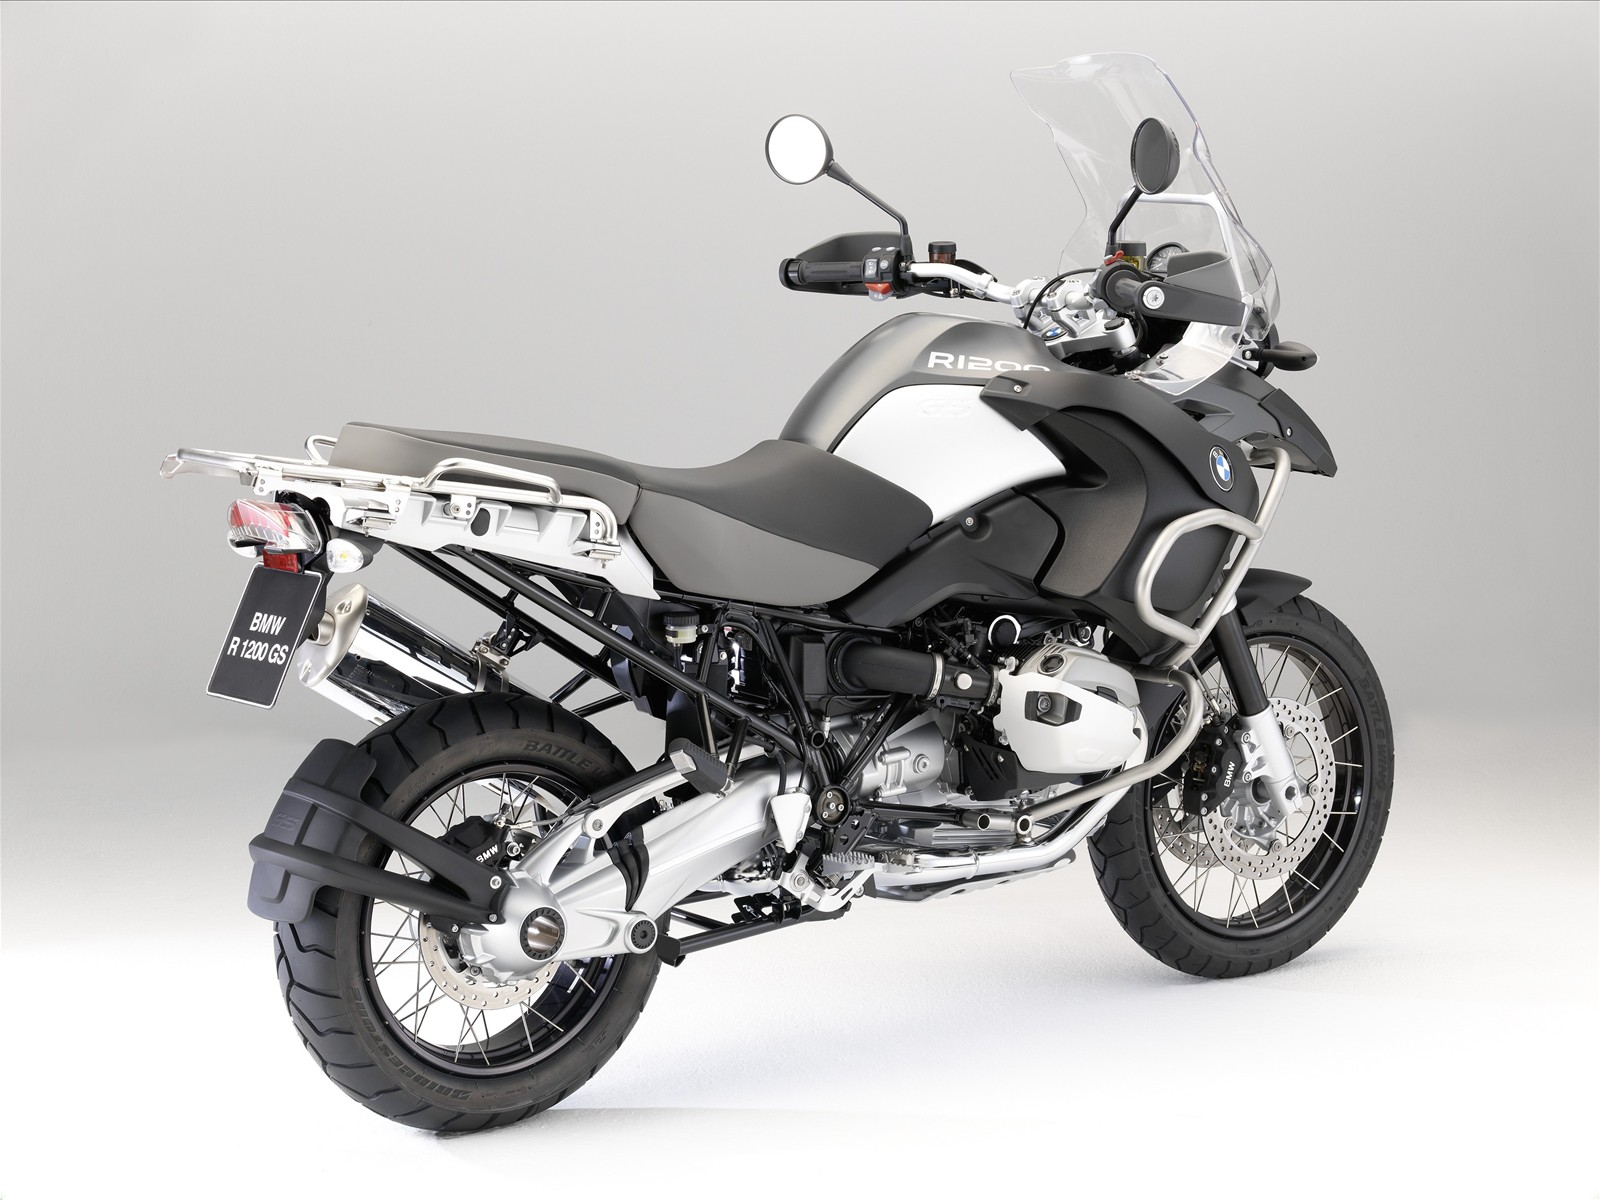 http://3.bp.blogspot.com/_71VYESfu88A/SwIGD9wDruI/AAAAAAAABNU/D7eGW7o2RQs/s1600/The-New-BMW-R-1200-GS-Adventure-30.jpg